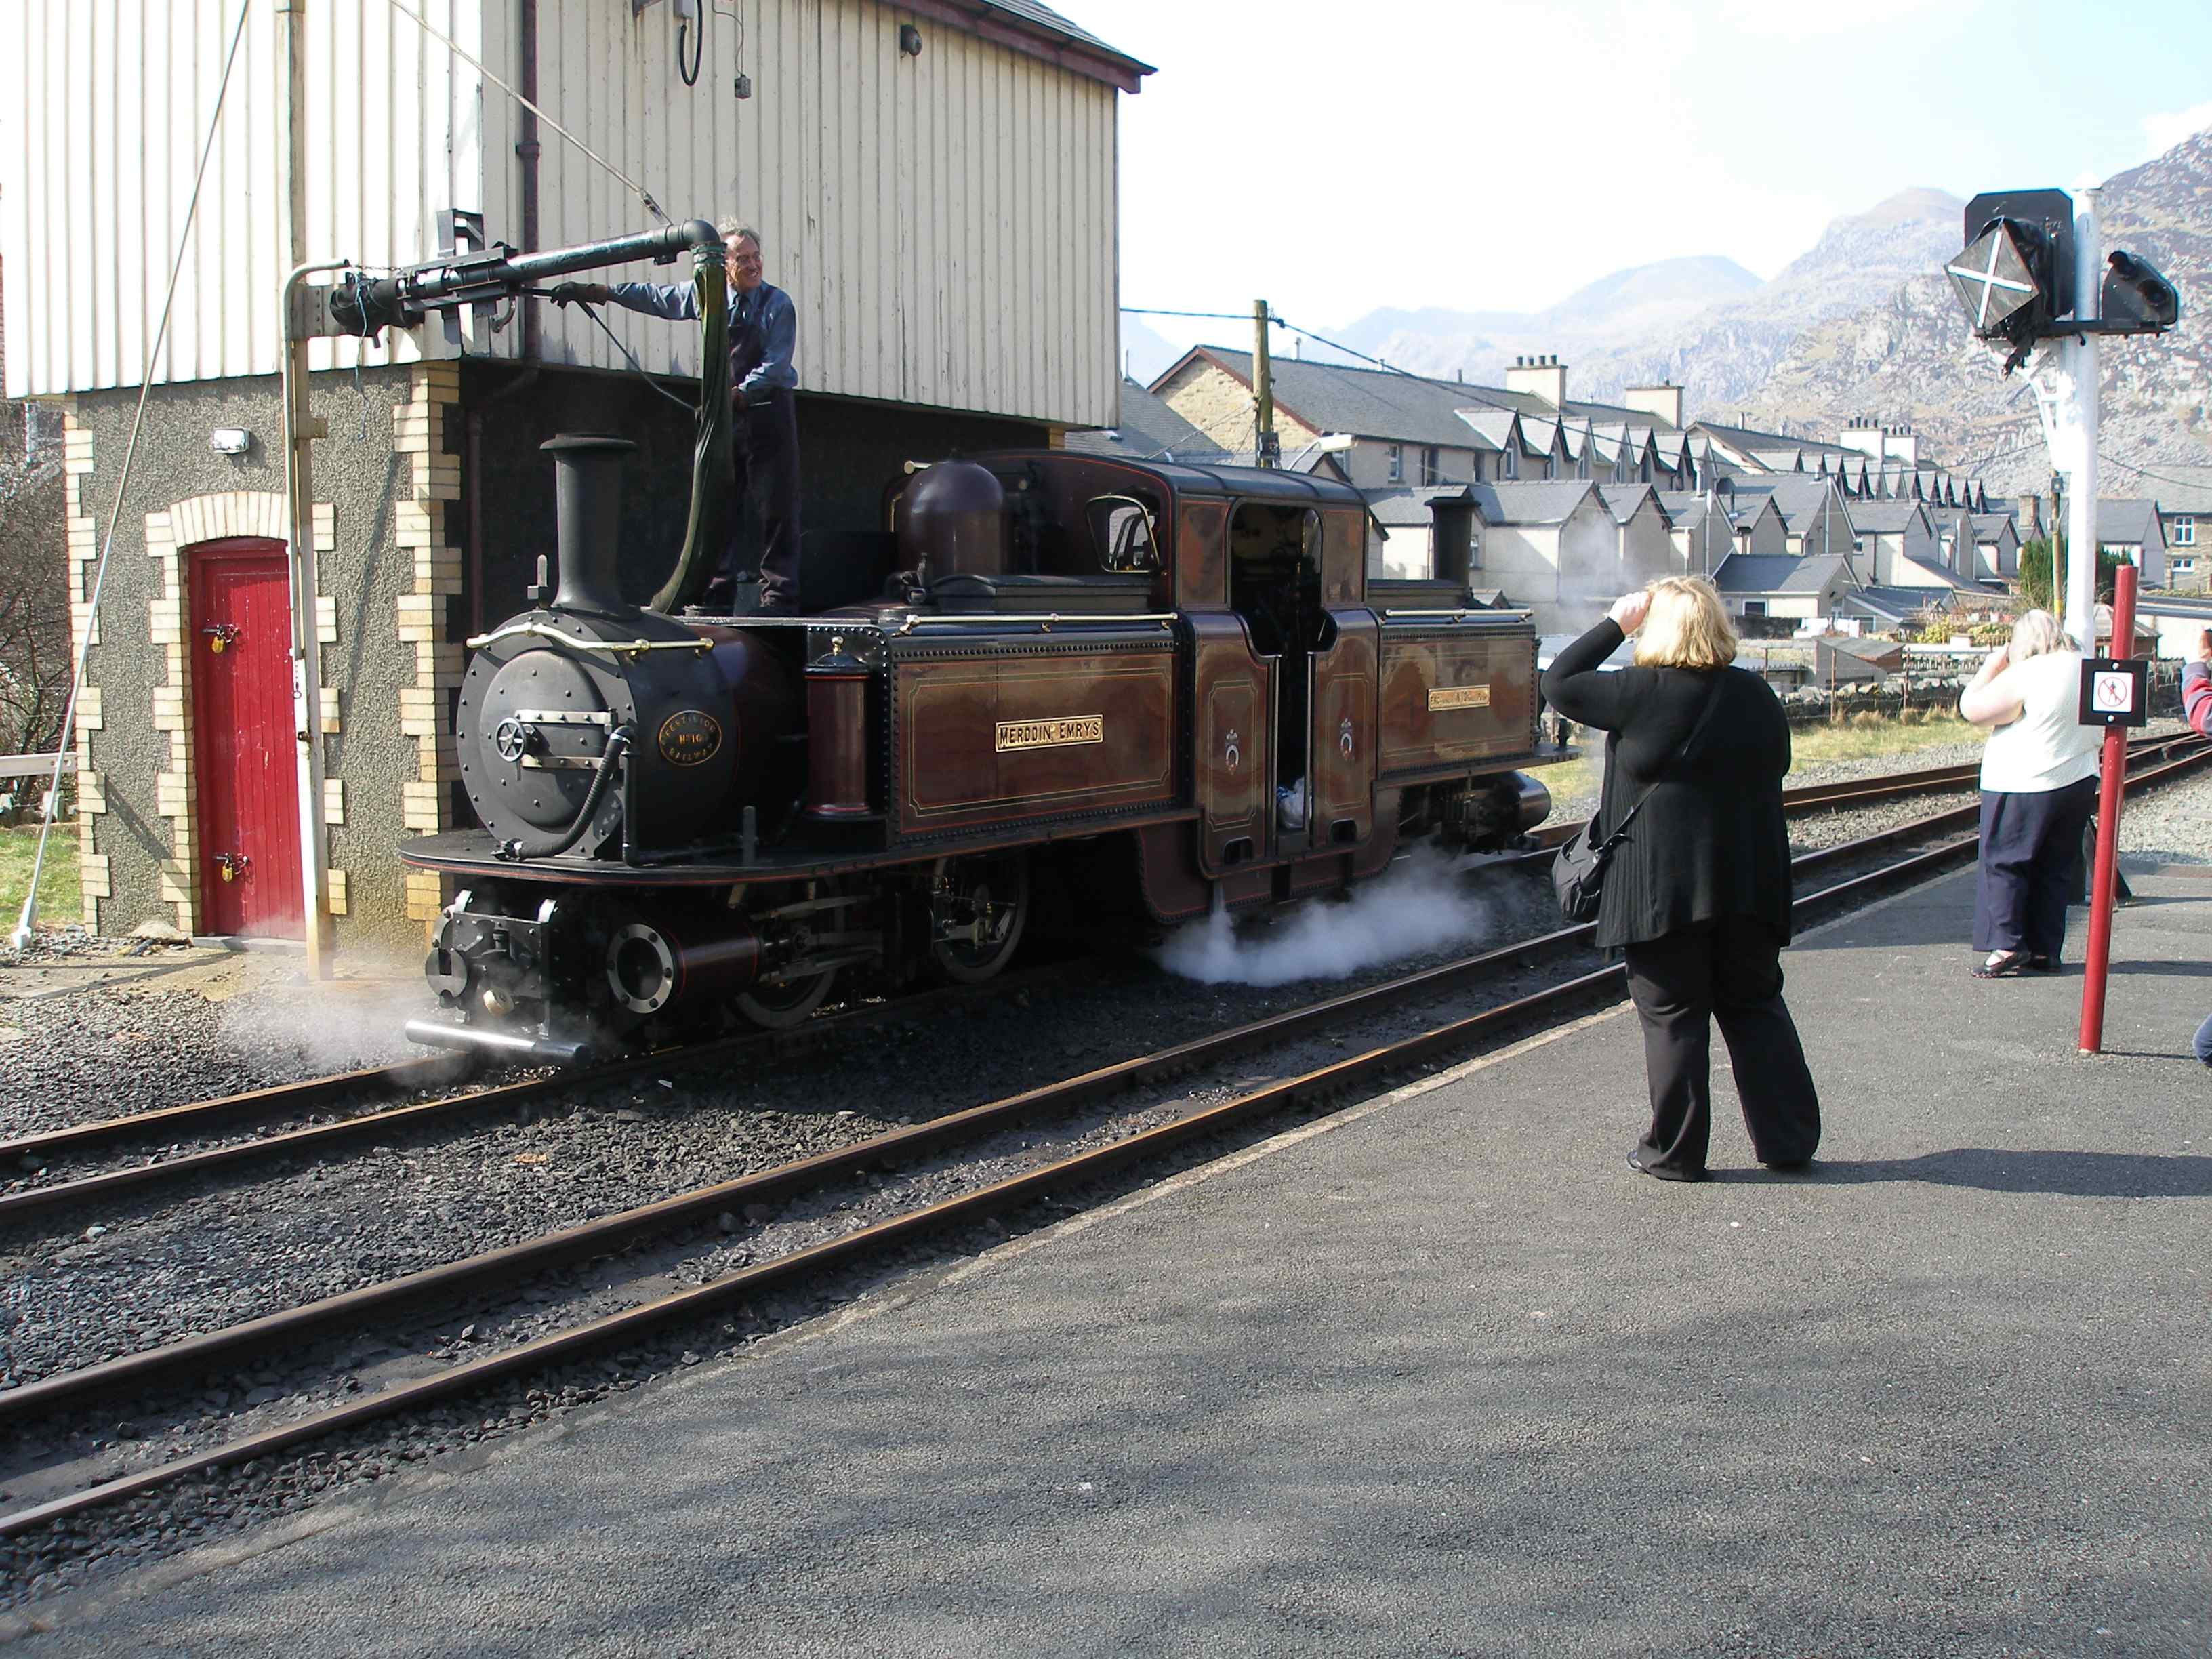 'Merddin Emrys' takes water at Blaenau Ffestiniog. Note the wooden cladding to protect the tank at this exposed location.